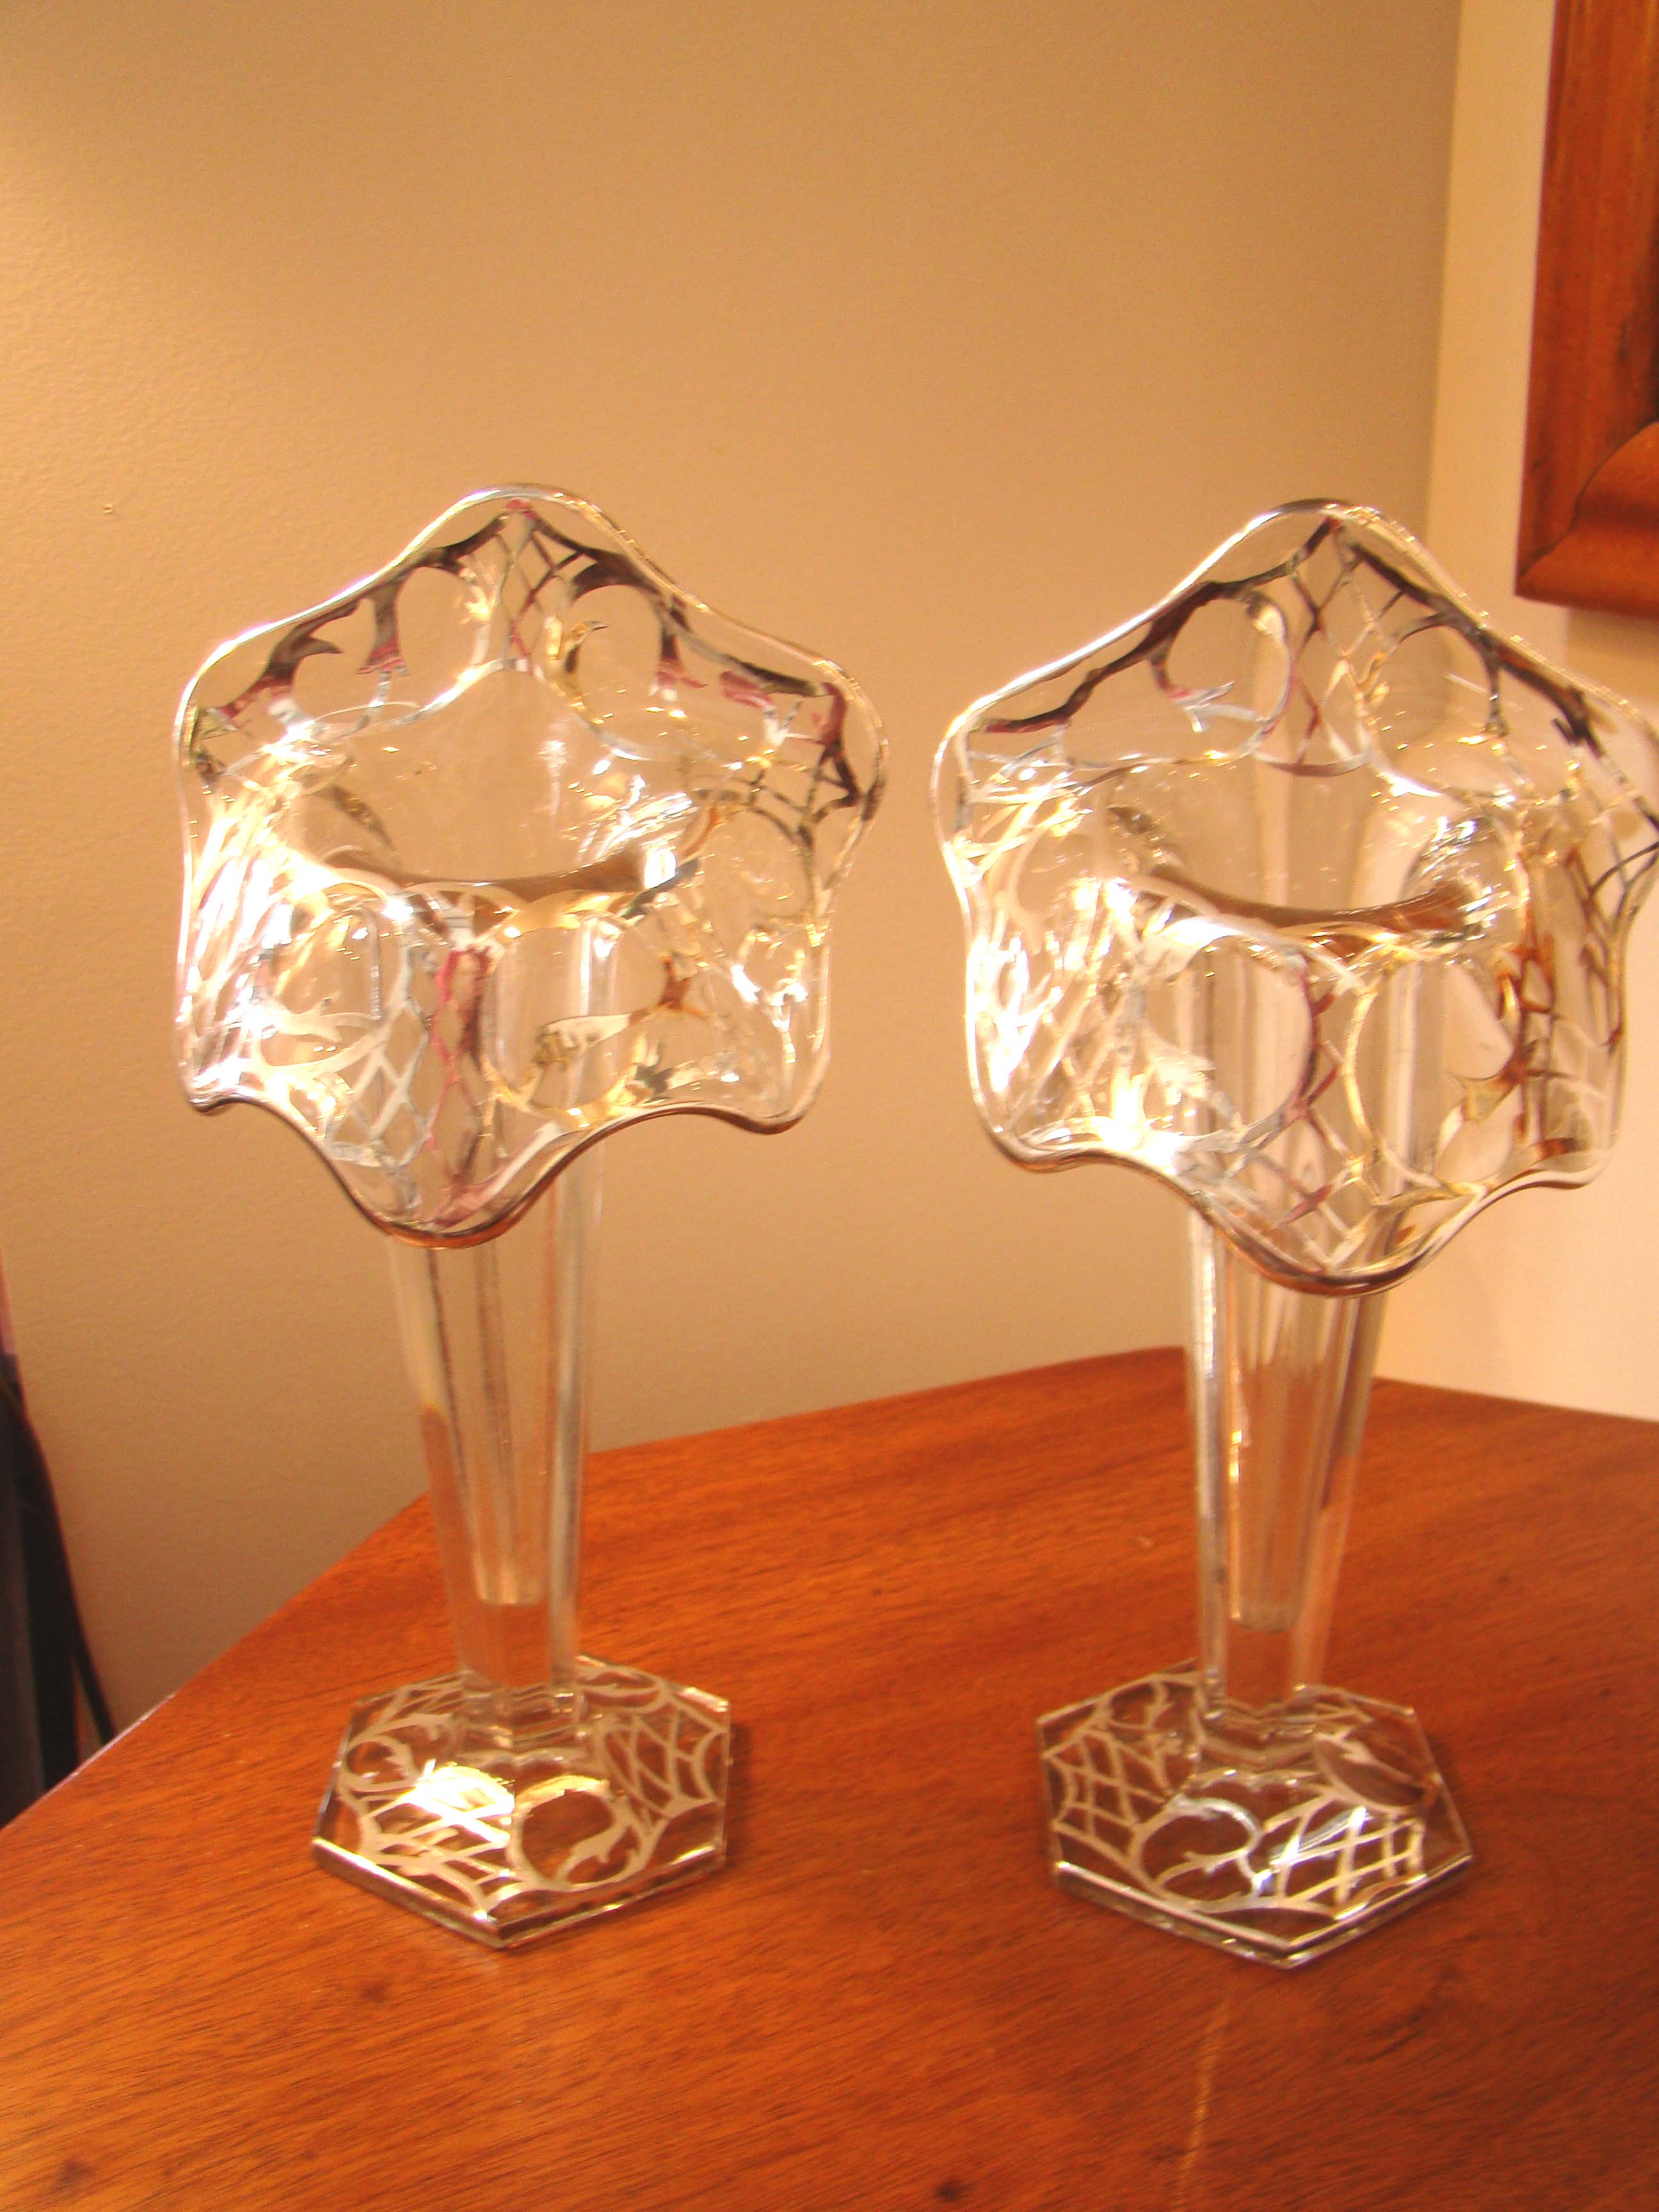 click to view larger image of A fabulous pair of vintage silver overlay tulip vases circa 1900-1920.